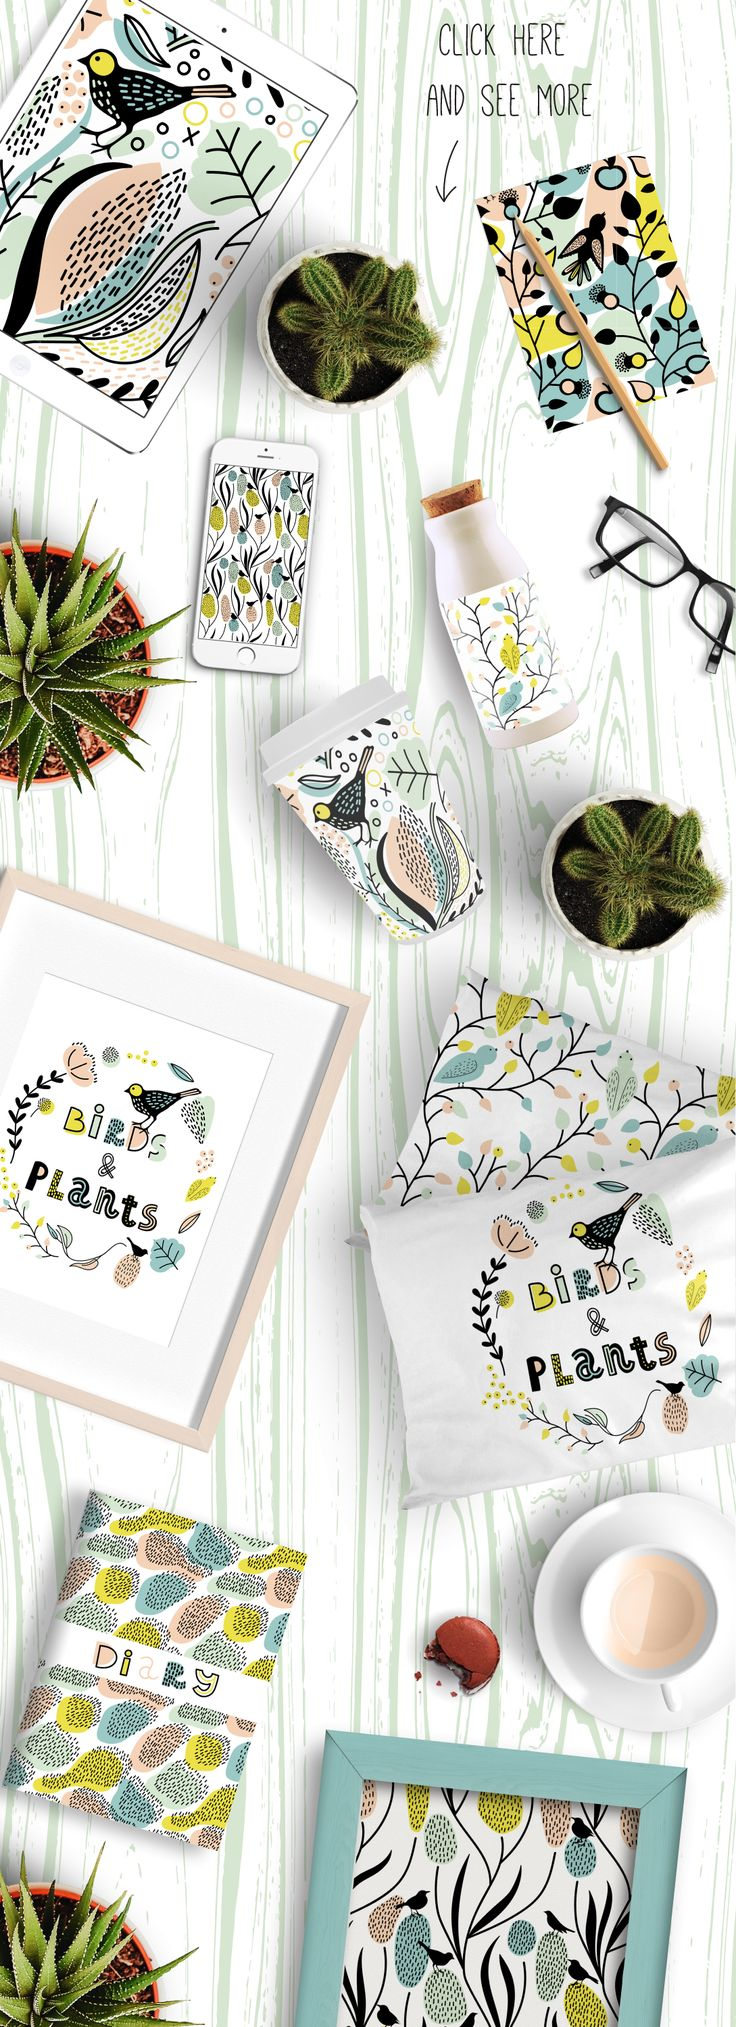 Birds and Plants: Five hand drawn seamless patterns and alphabet